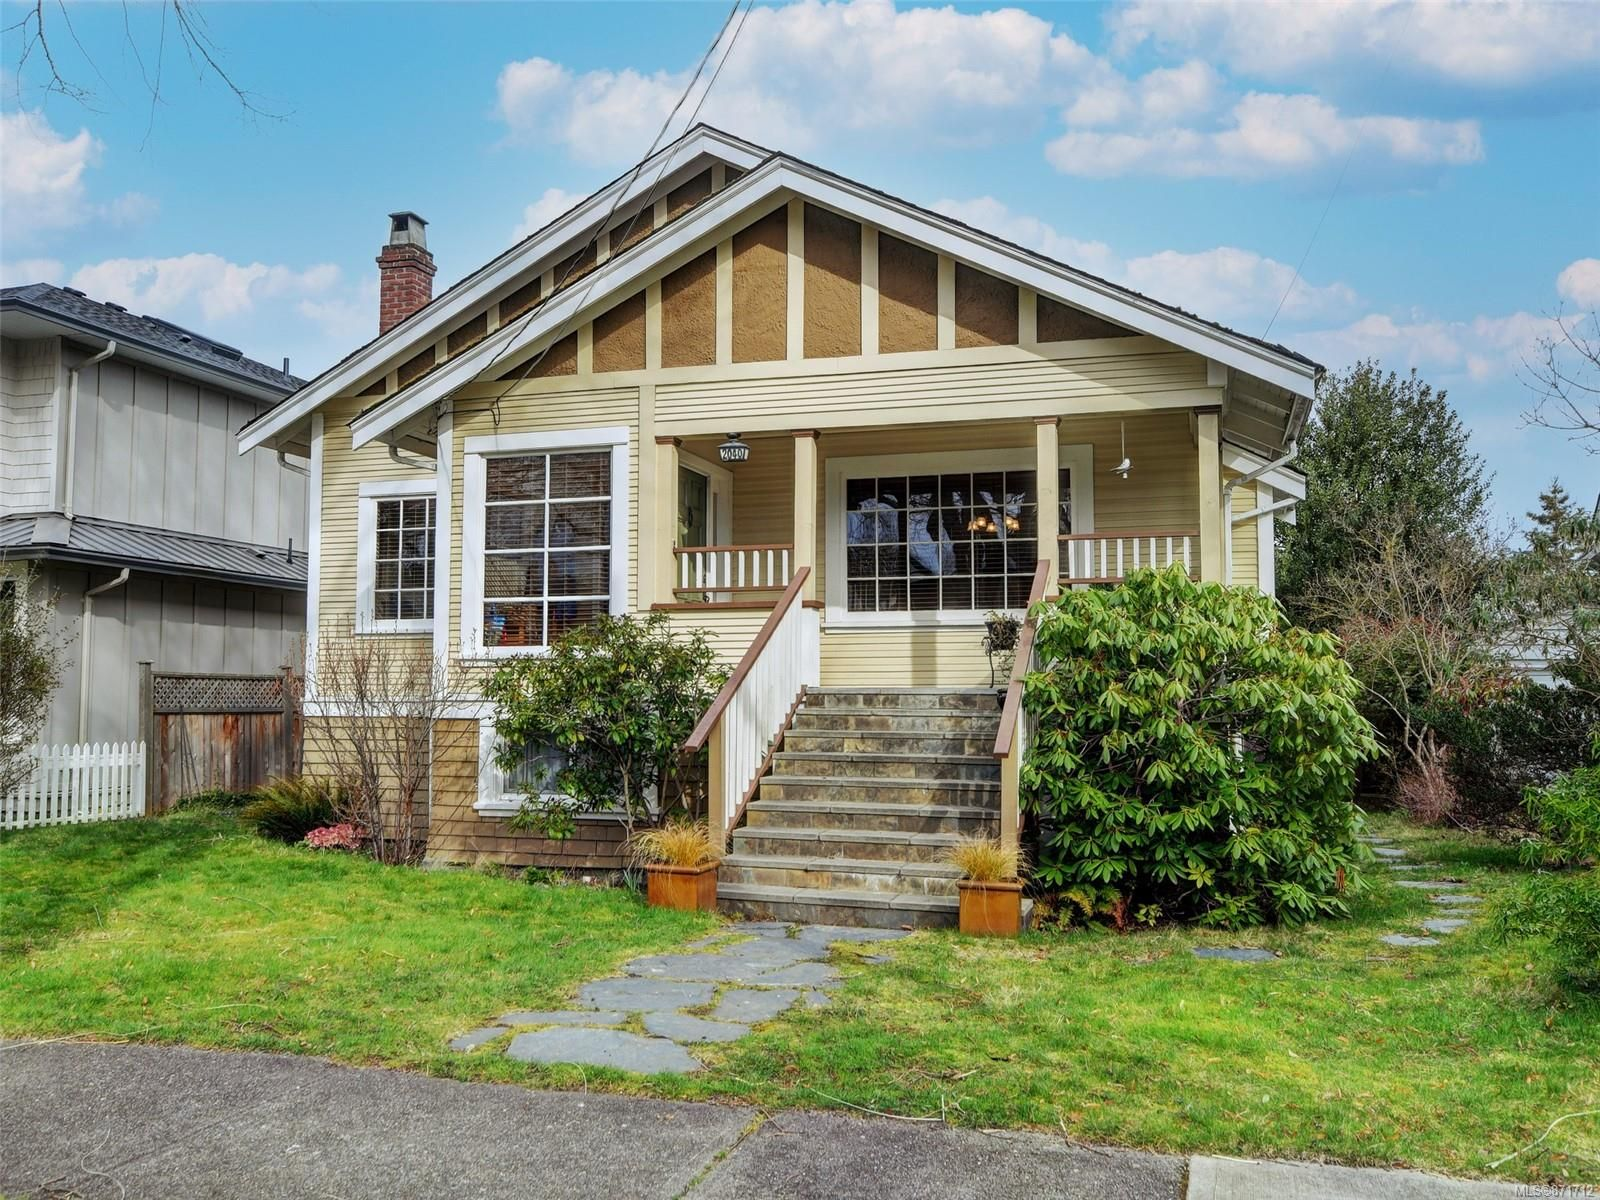 Main Photo: 2040 Chaucer St in : OB North Oak Bay House for sale (Oak Bay)  : MLS®# 871712